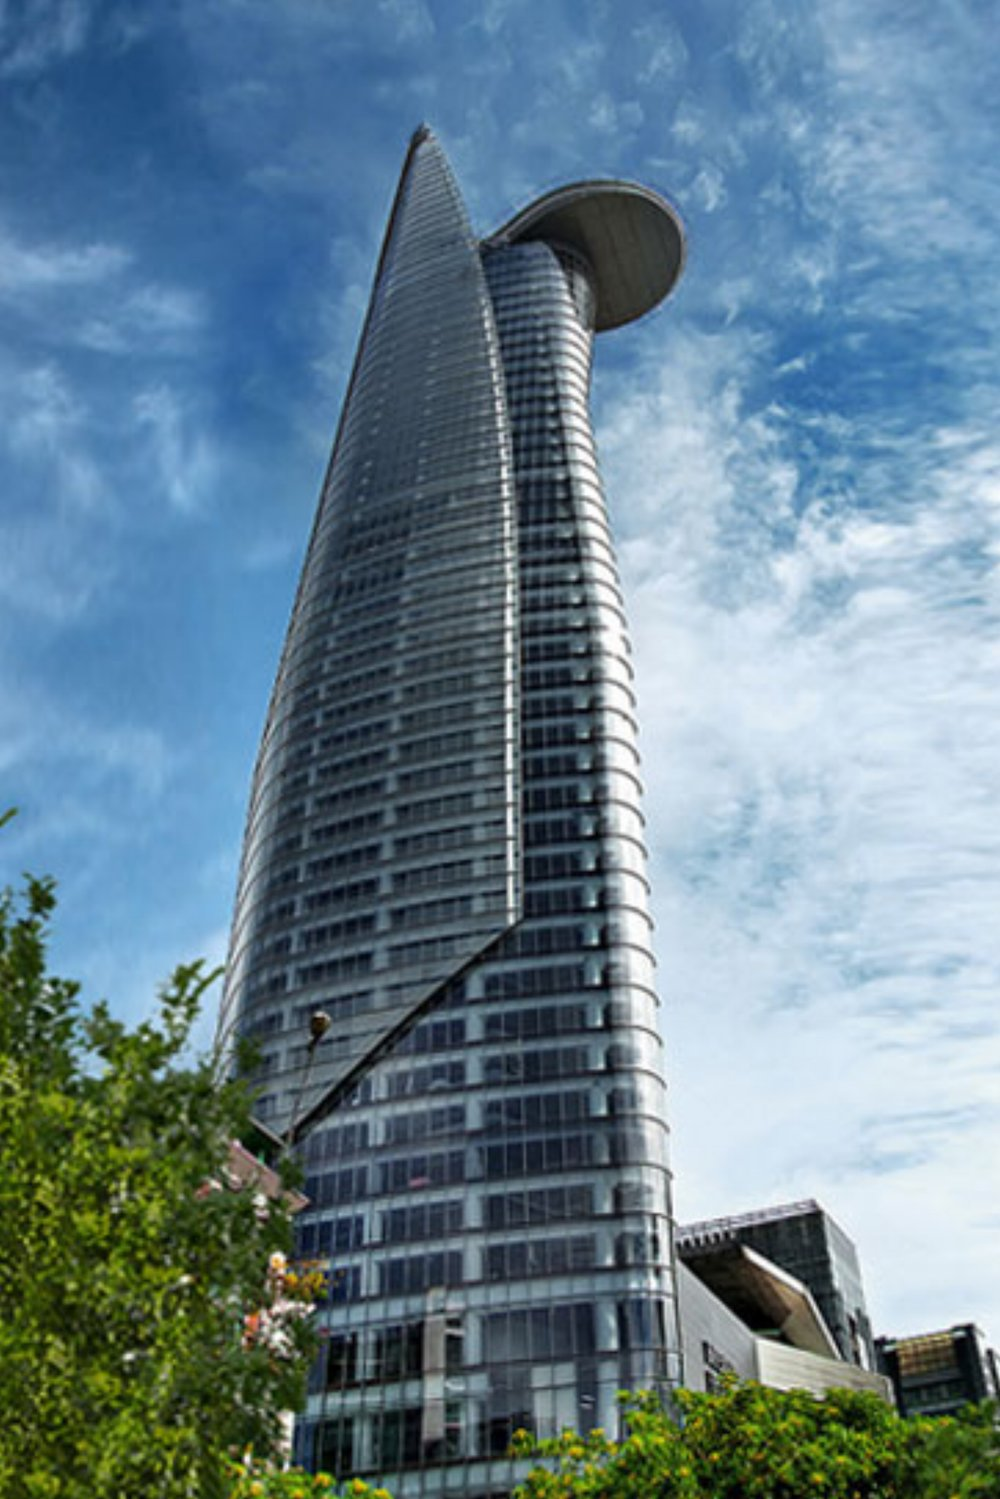 Bitexco Financial Tower -